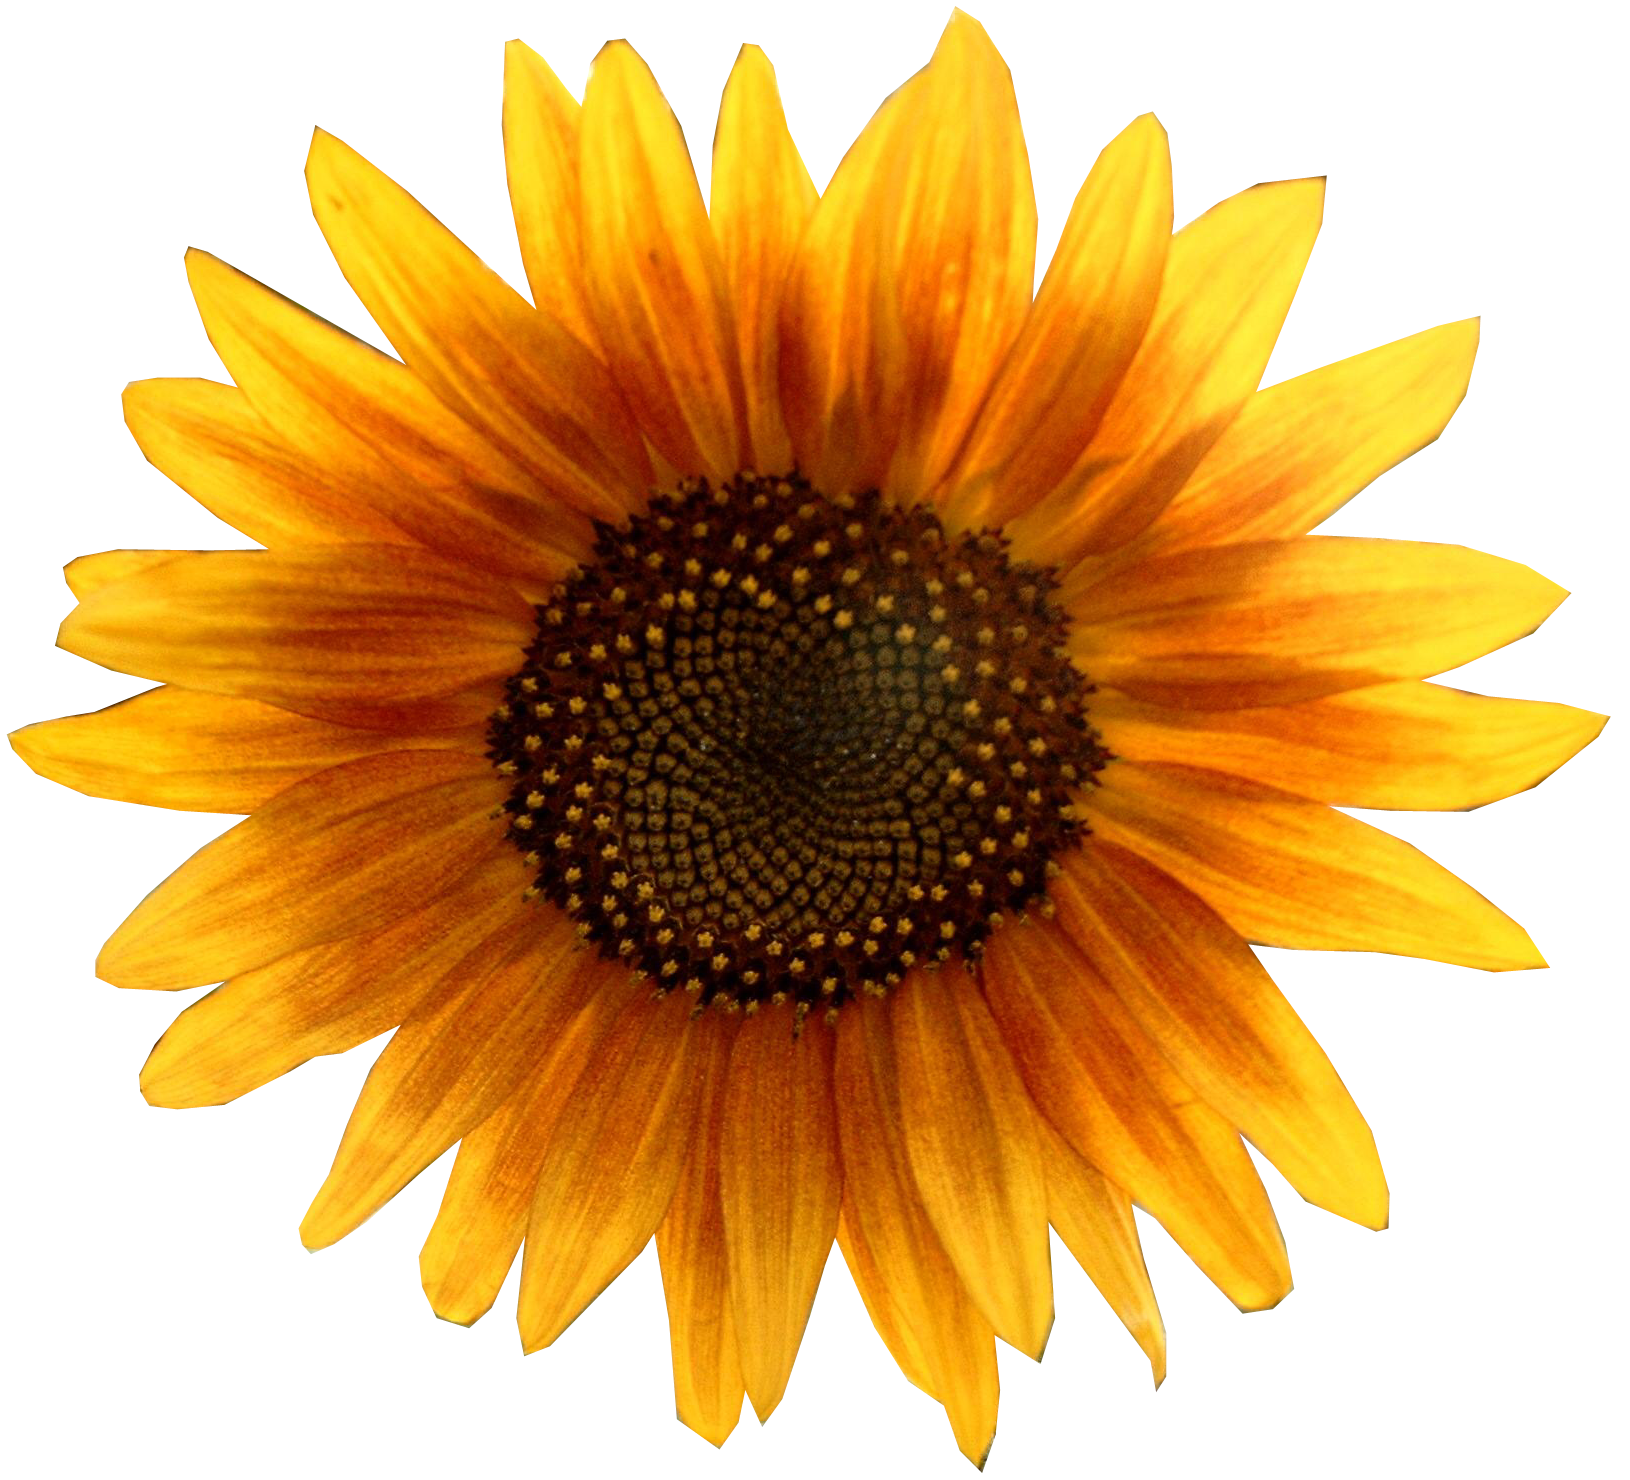 Harry l dr in. Gate clipart sunflower